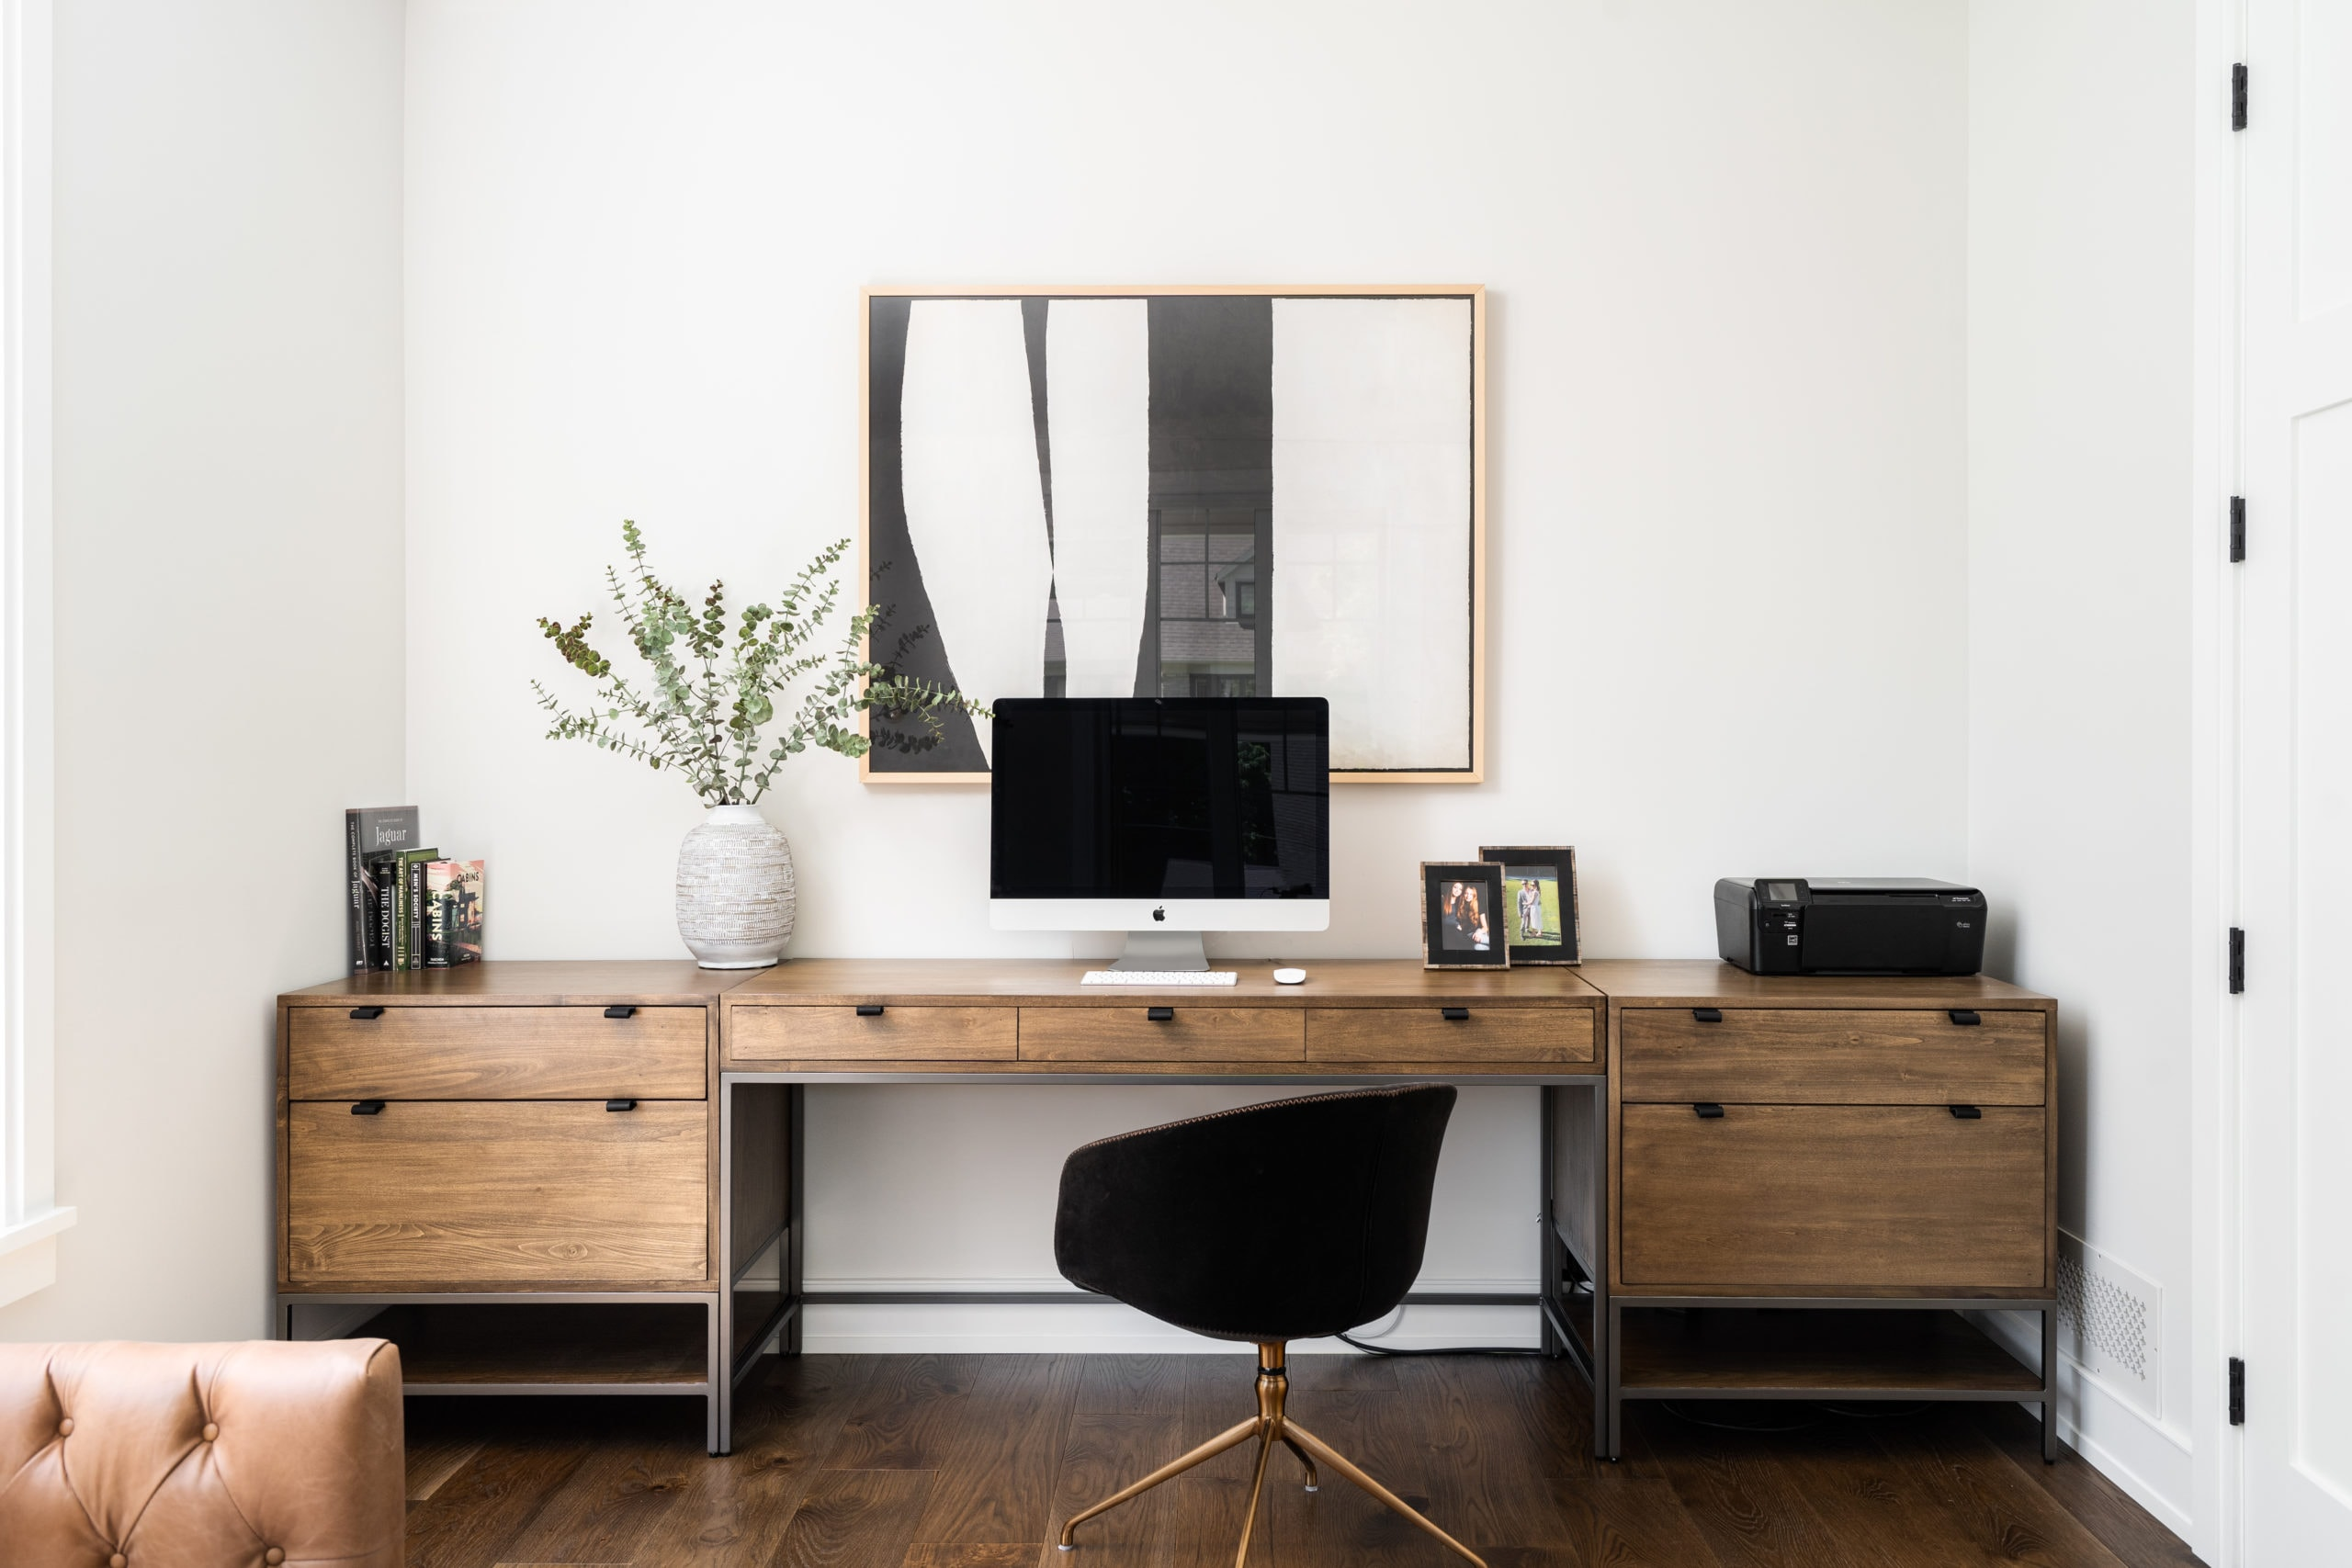 Modern wooden desk with an apple computer on it